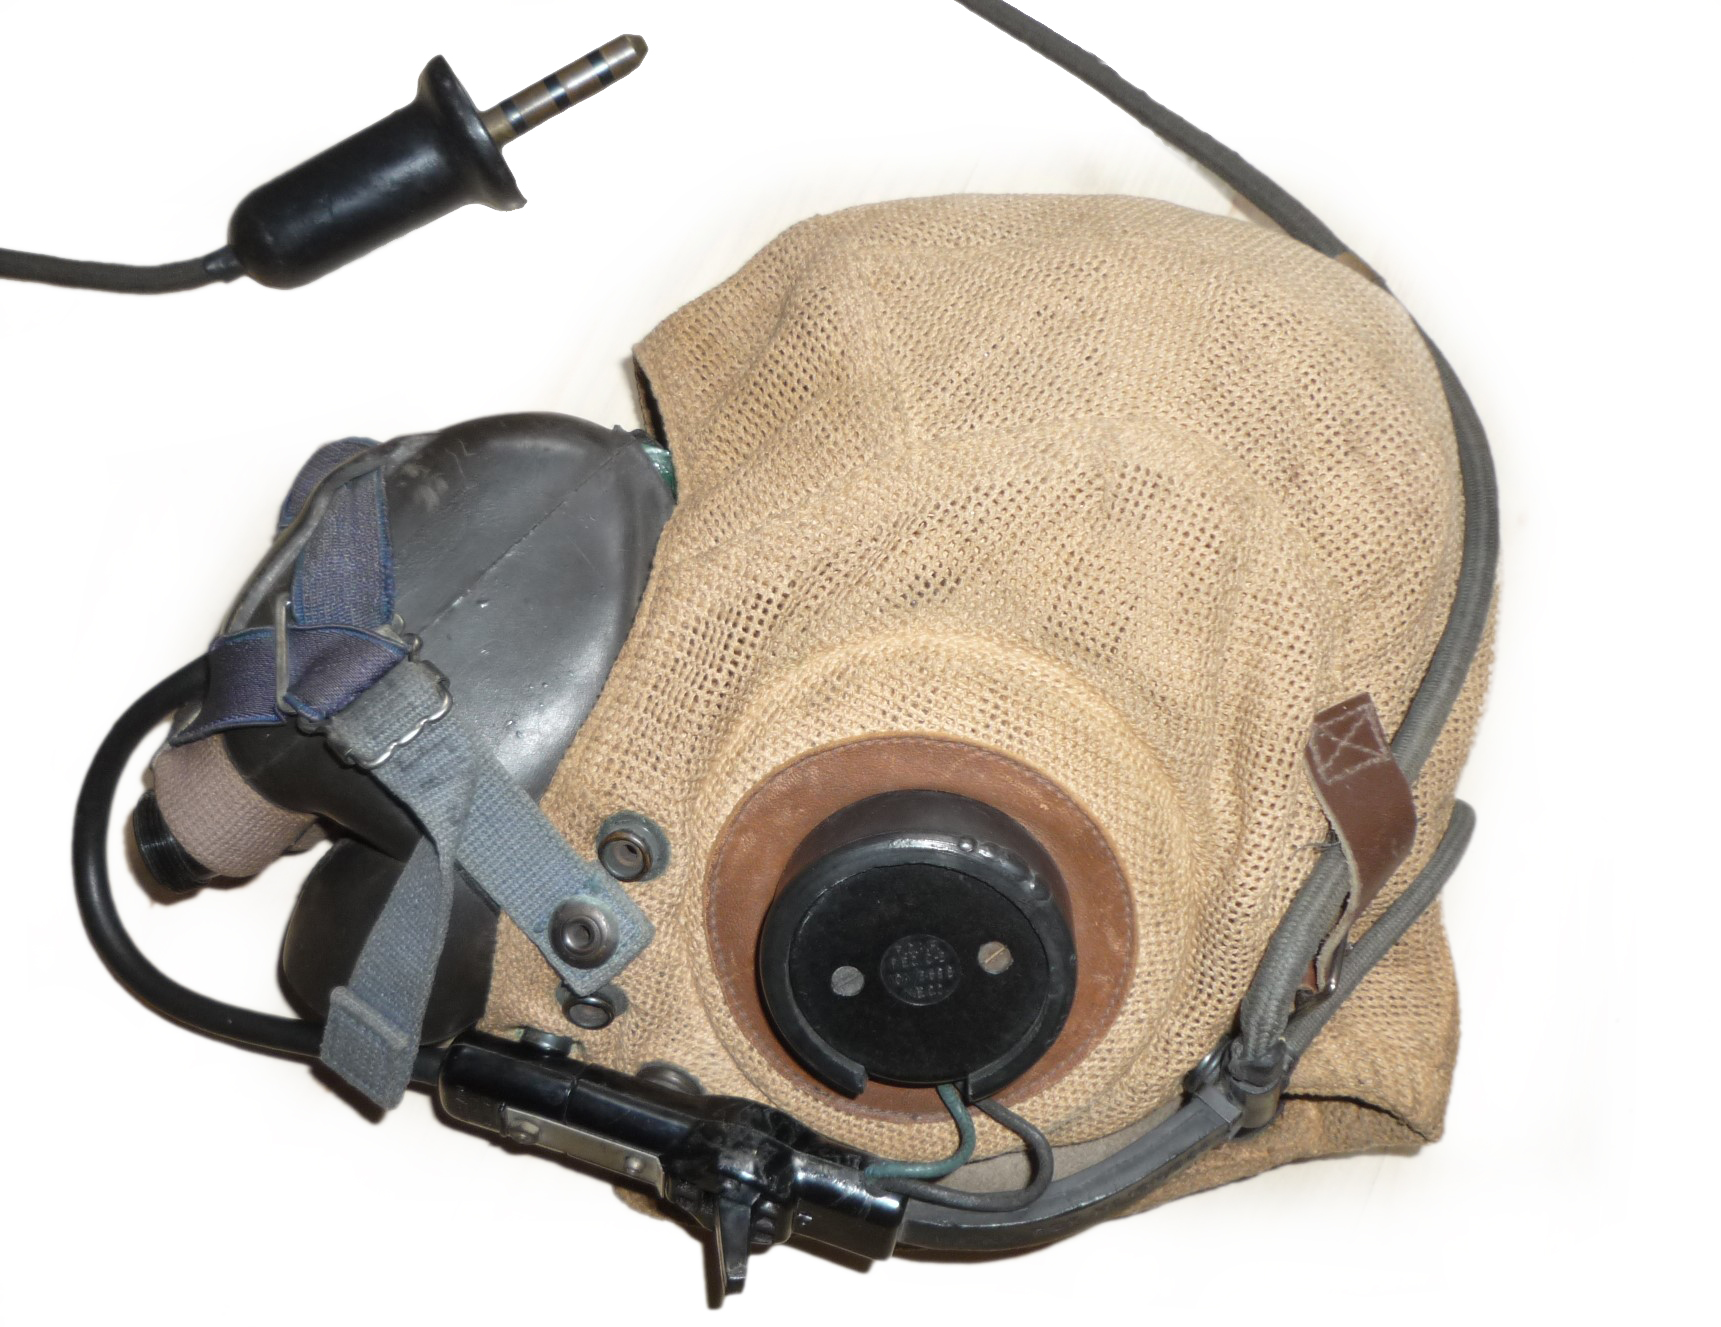 RCAF helmet and mask